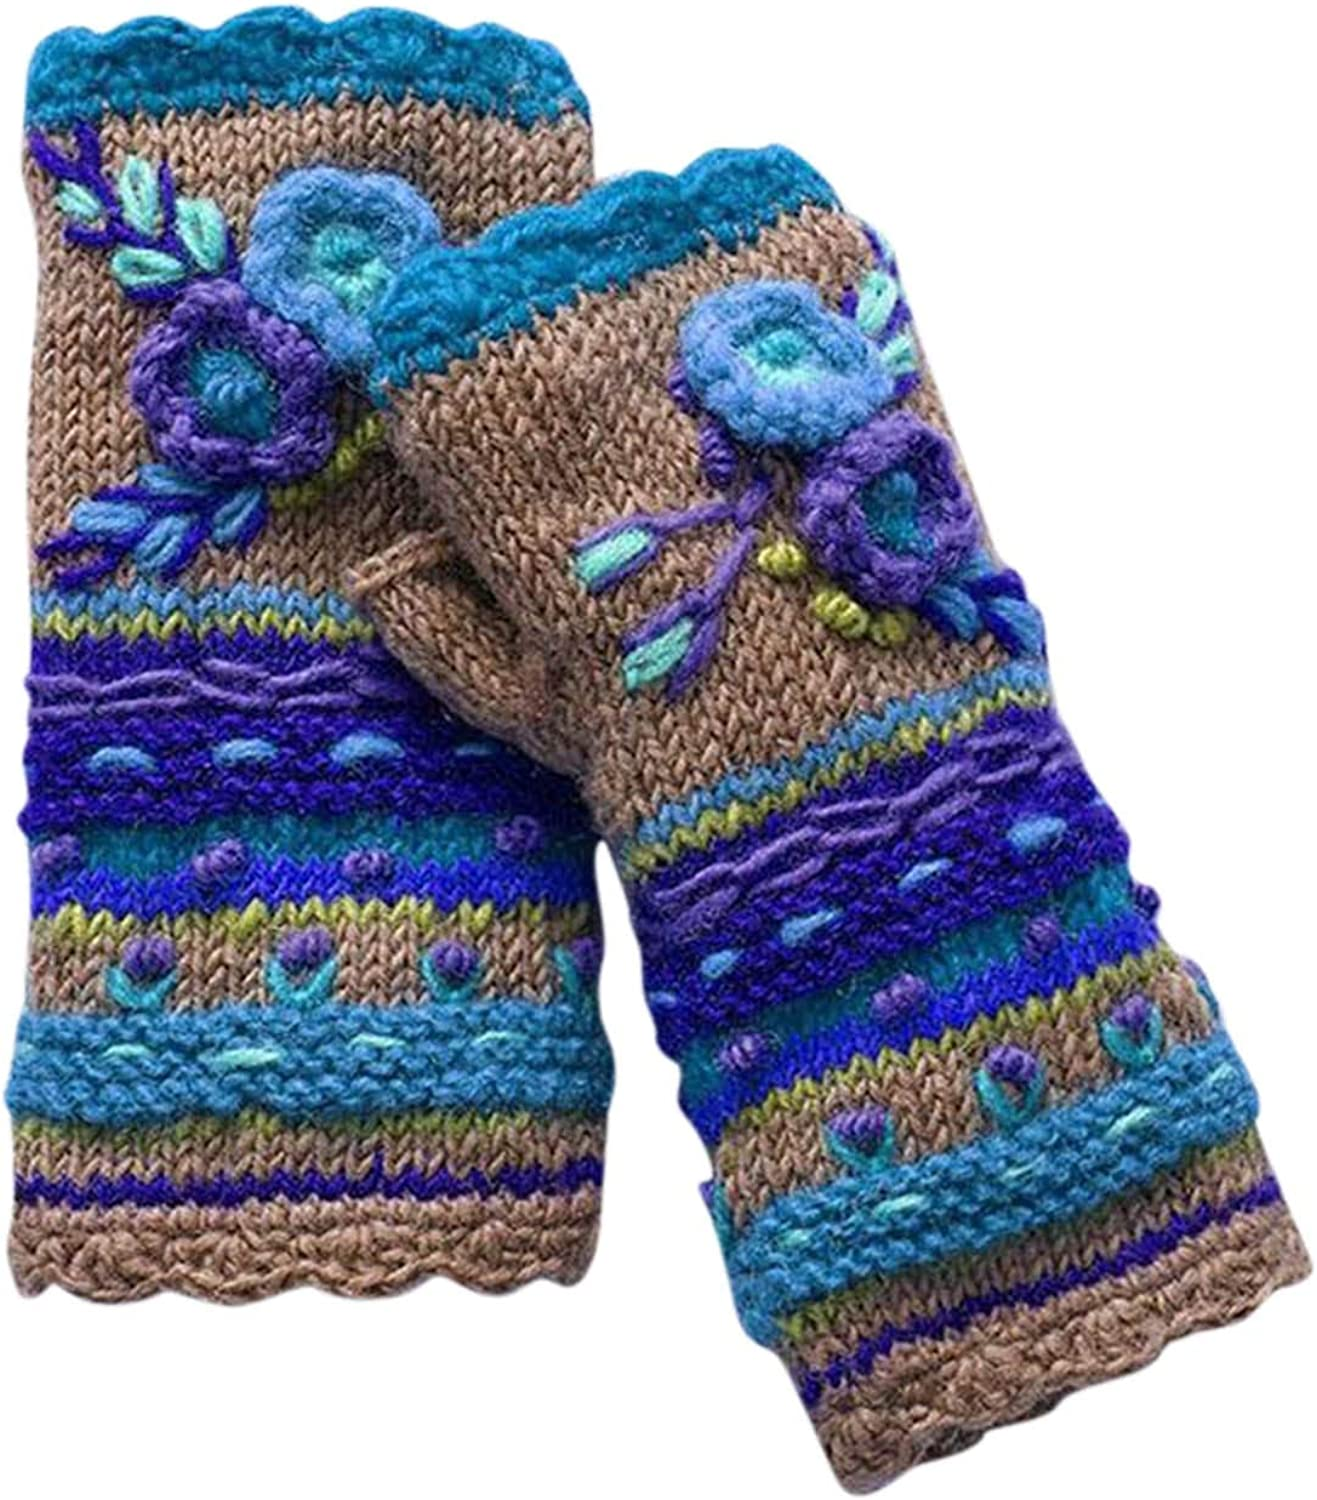 Vintage Multicolor Knitted Gloves with Floral Fingerless Gloves Knit Gloves for Girls Women Warm Hand Warmers